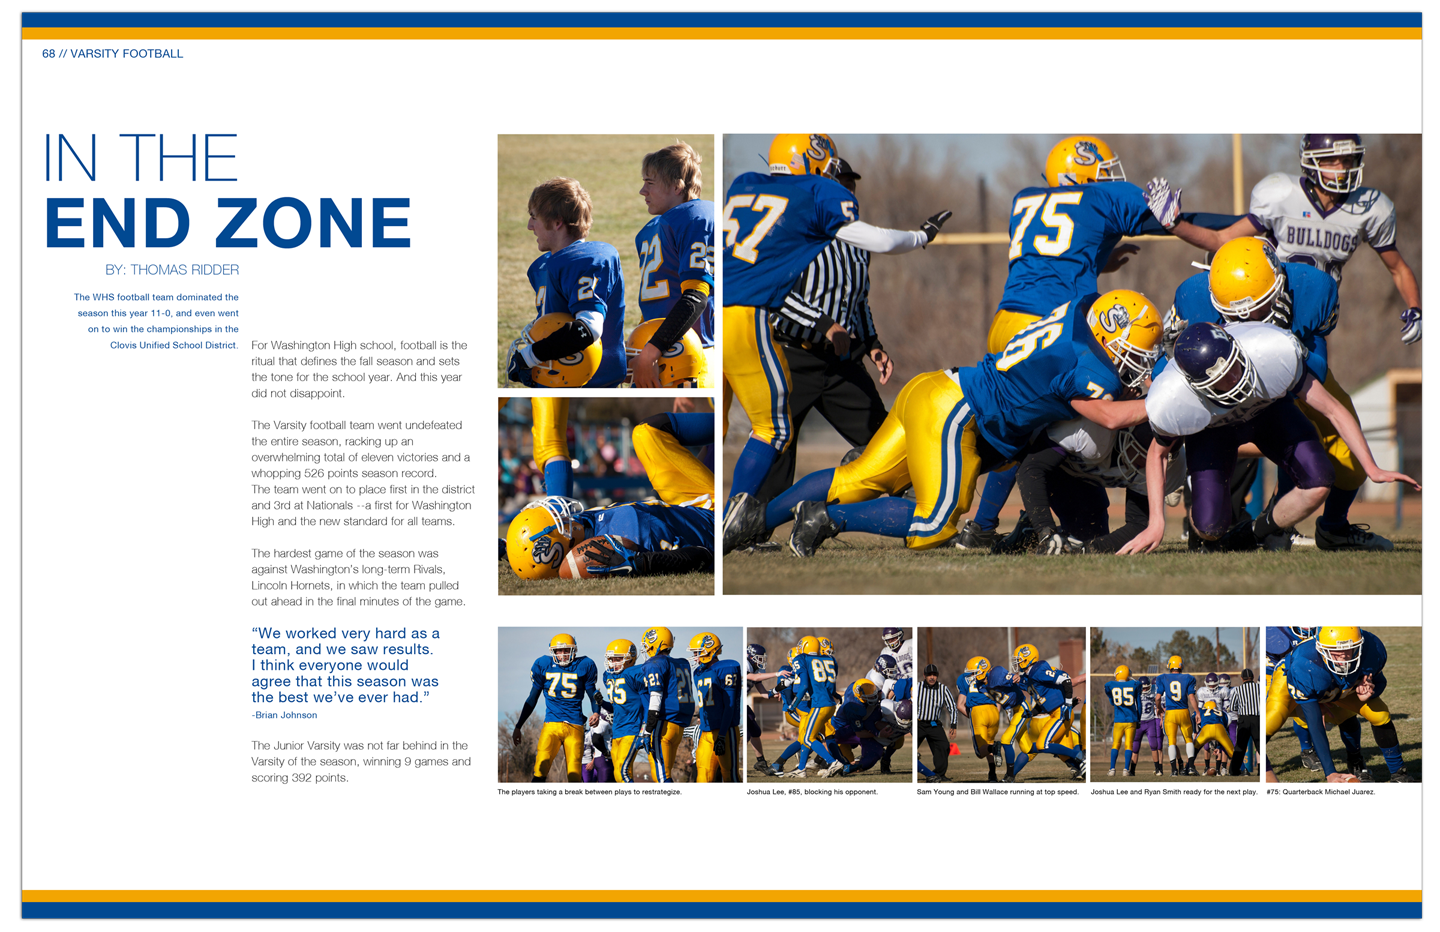 Example Of The Page Spread Of The Championship Football Season